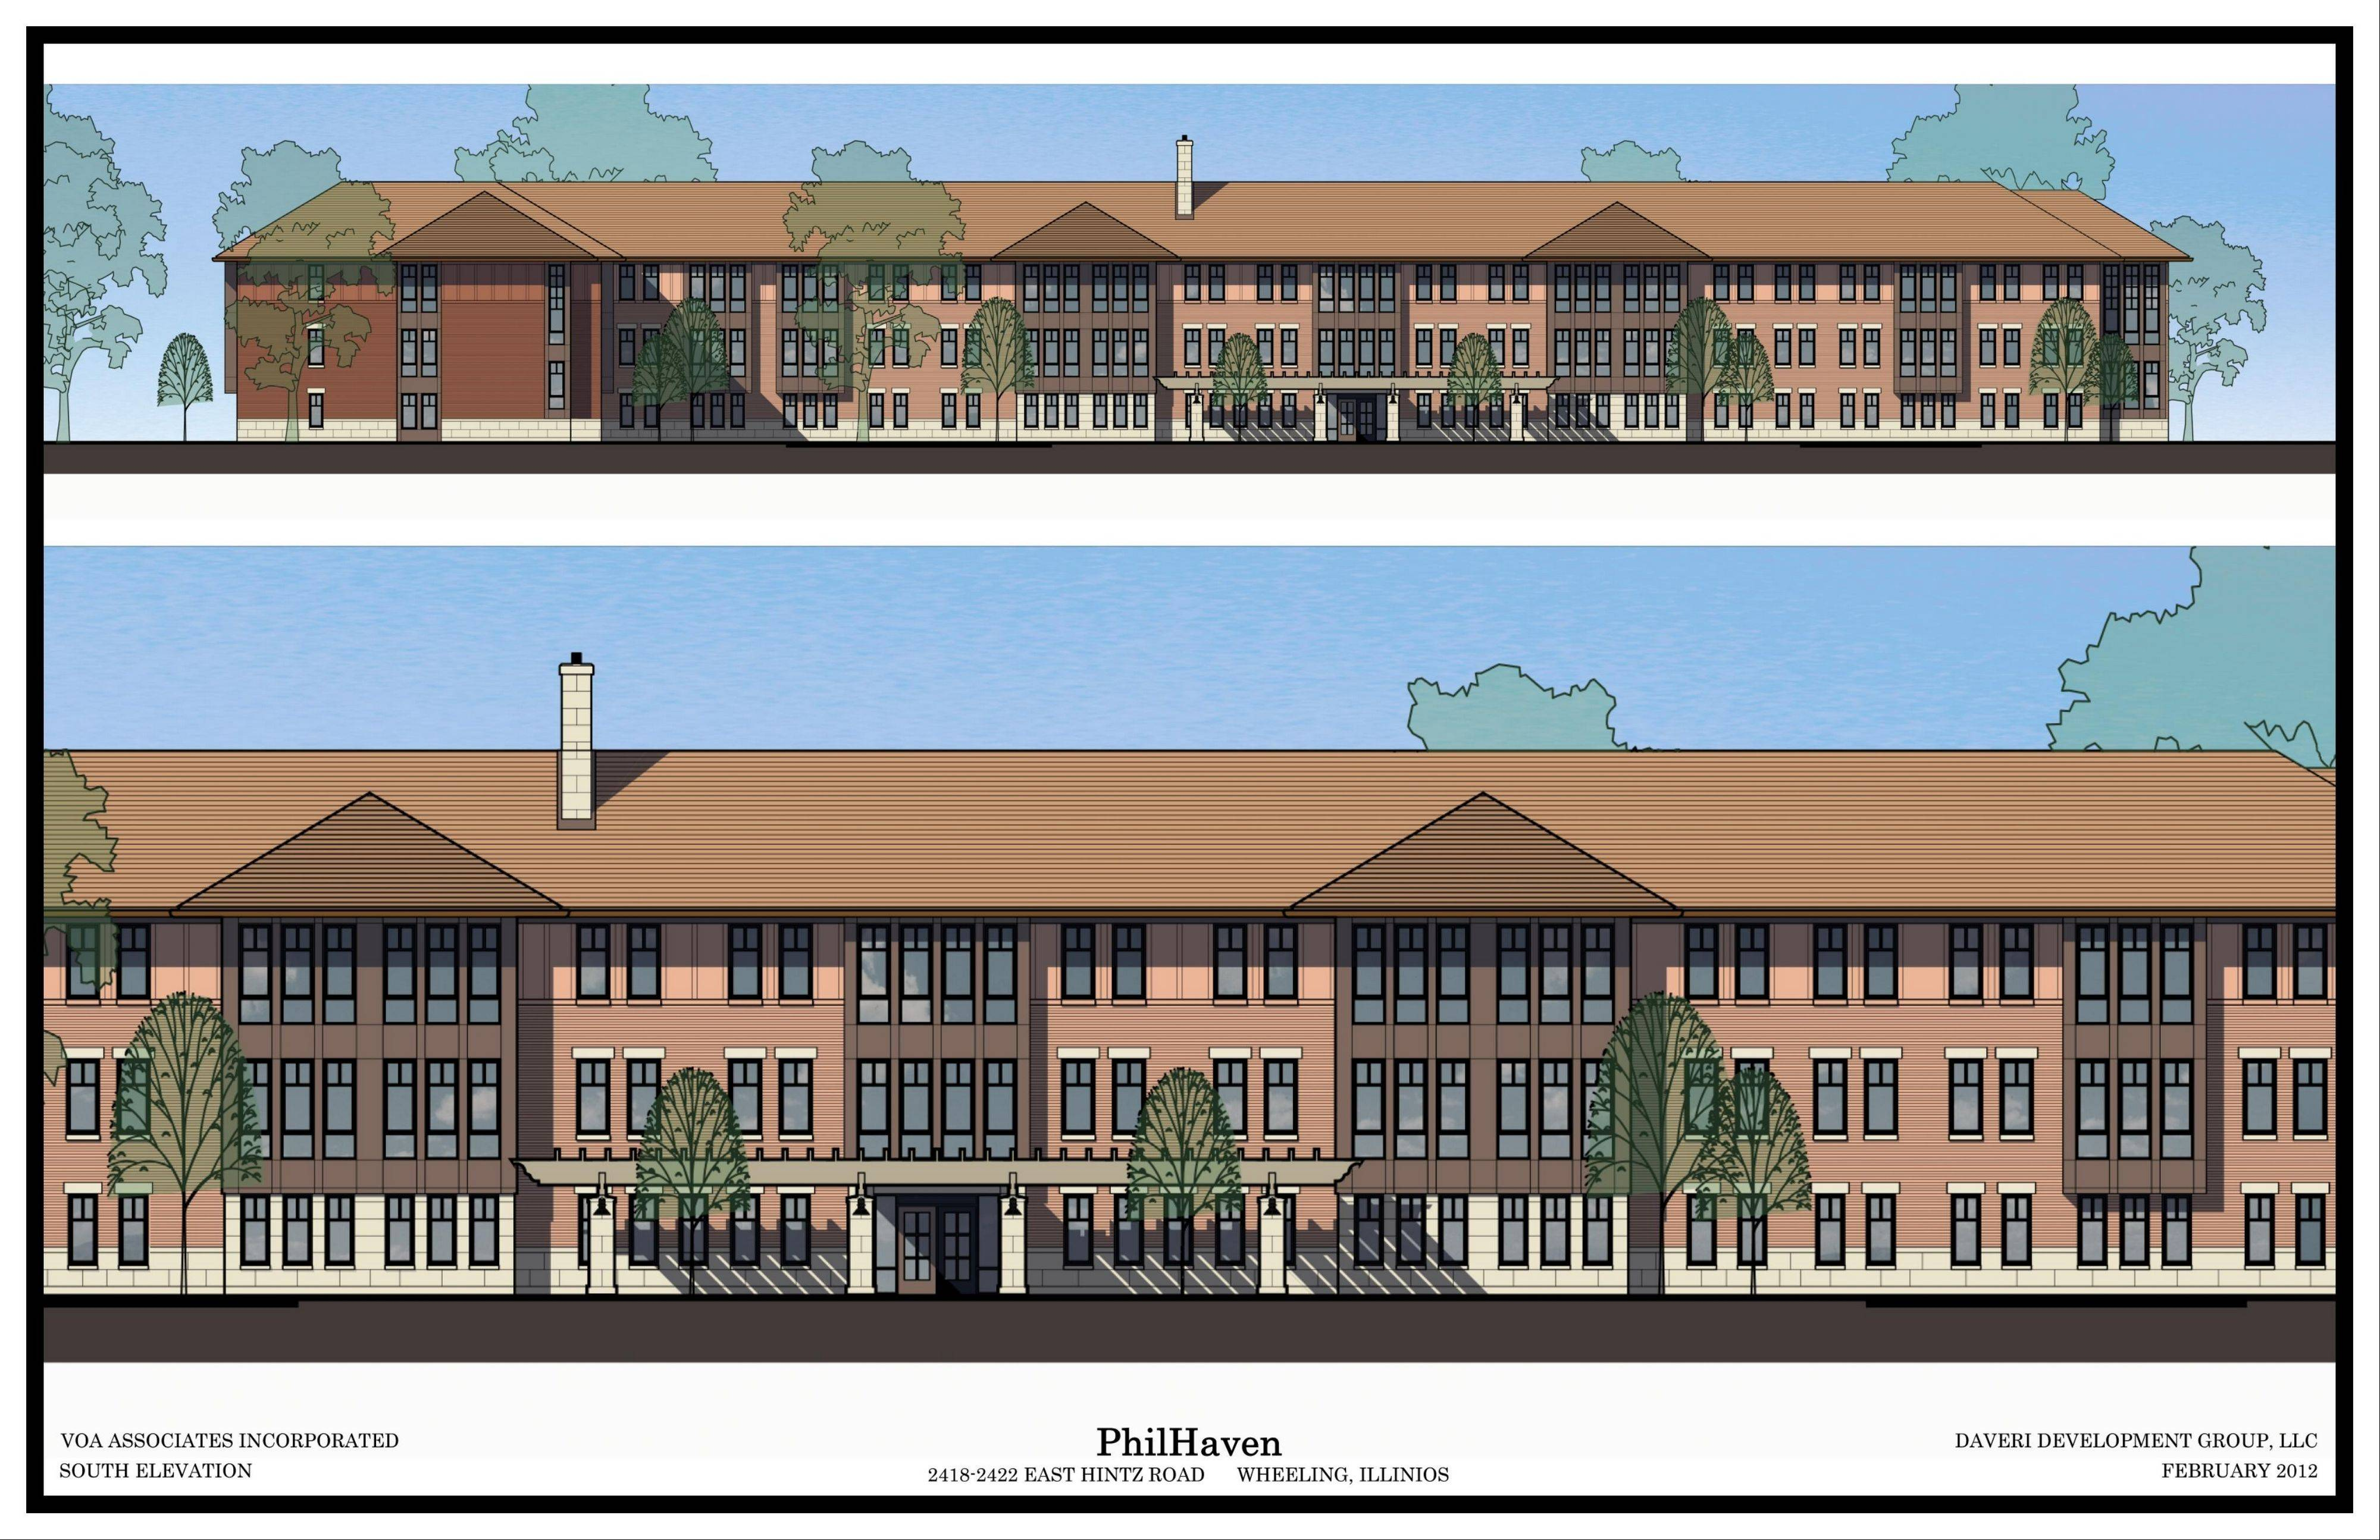 Wheeling trustees on Monday rejected Philhaven, a proposal for a multifamily apartment complex to house low-income residents with mental or physical disabilities.